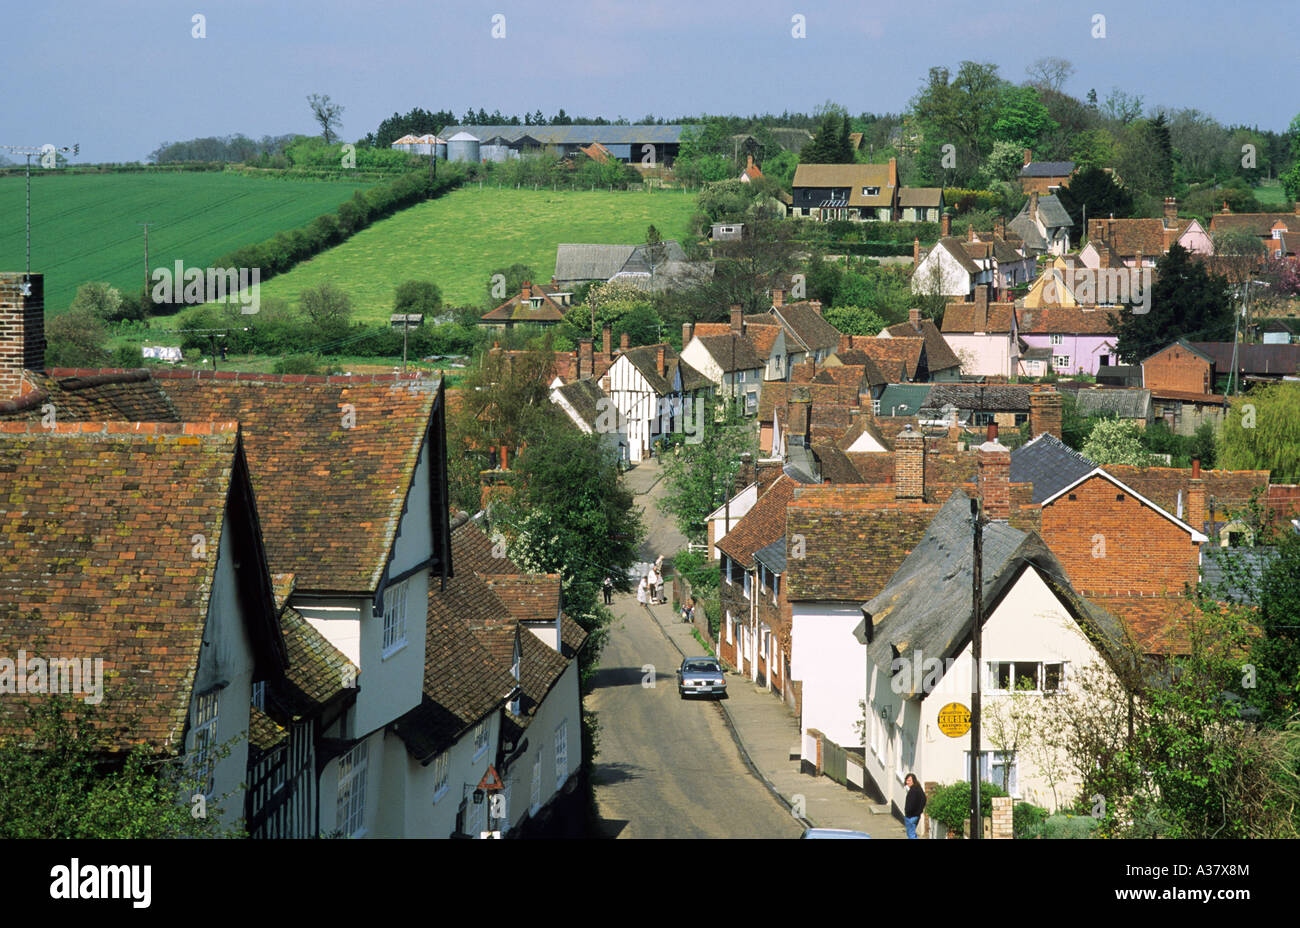 Kersey, Suffolk, view from churchyard, East Anglia, England, UK, village, English, street, charm, peace, quiet English - Stock Image